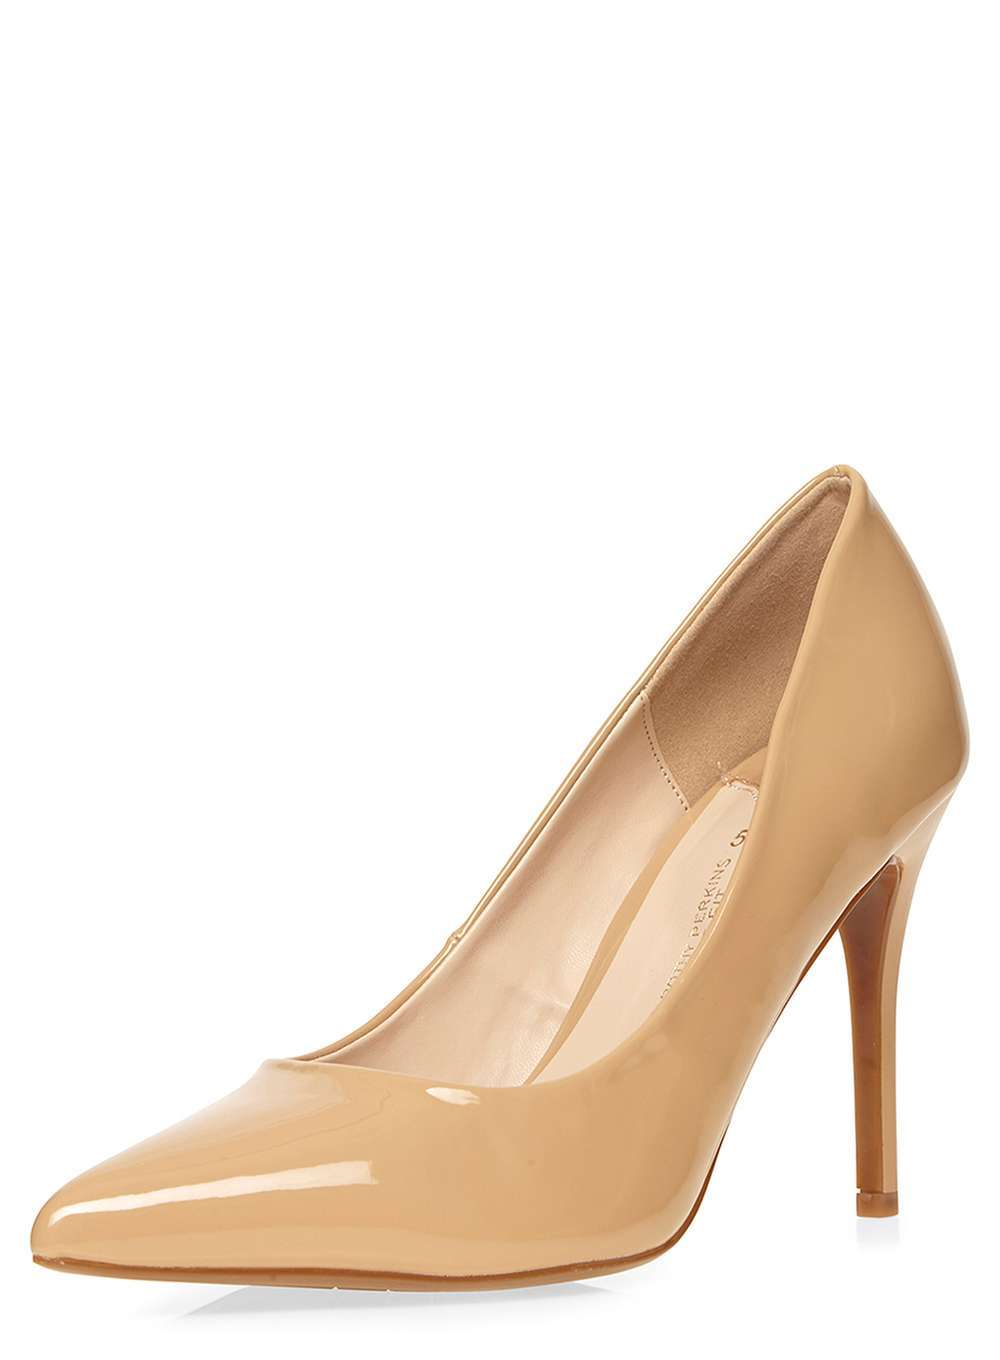 Womens Wide Fit Nude 'wiggle' Court Shoes Nude. - predominant colour: nude; occasions: evening, work, occasion; material: leather; heel height: high; heel: stiletto; toe: pointed toe; style: courts; finish: patent; pattern: plain; wardrobe: investment; season: a/w 2016